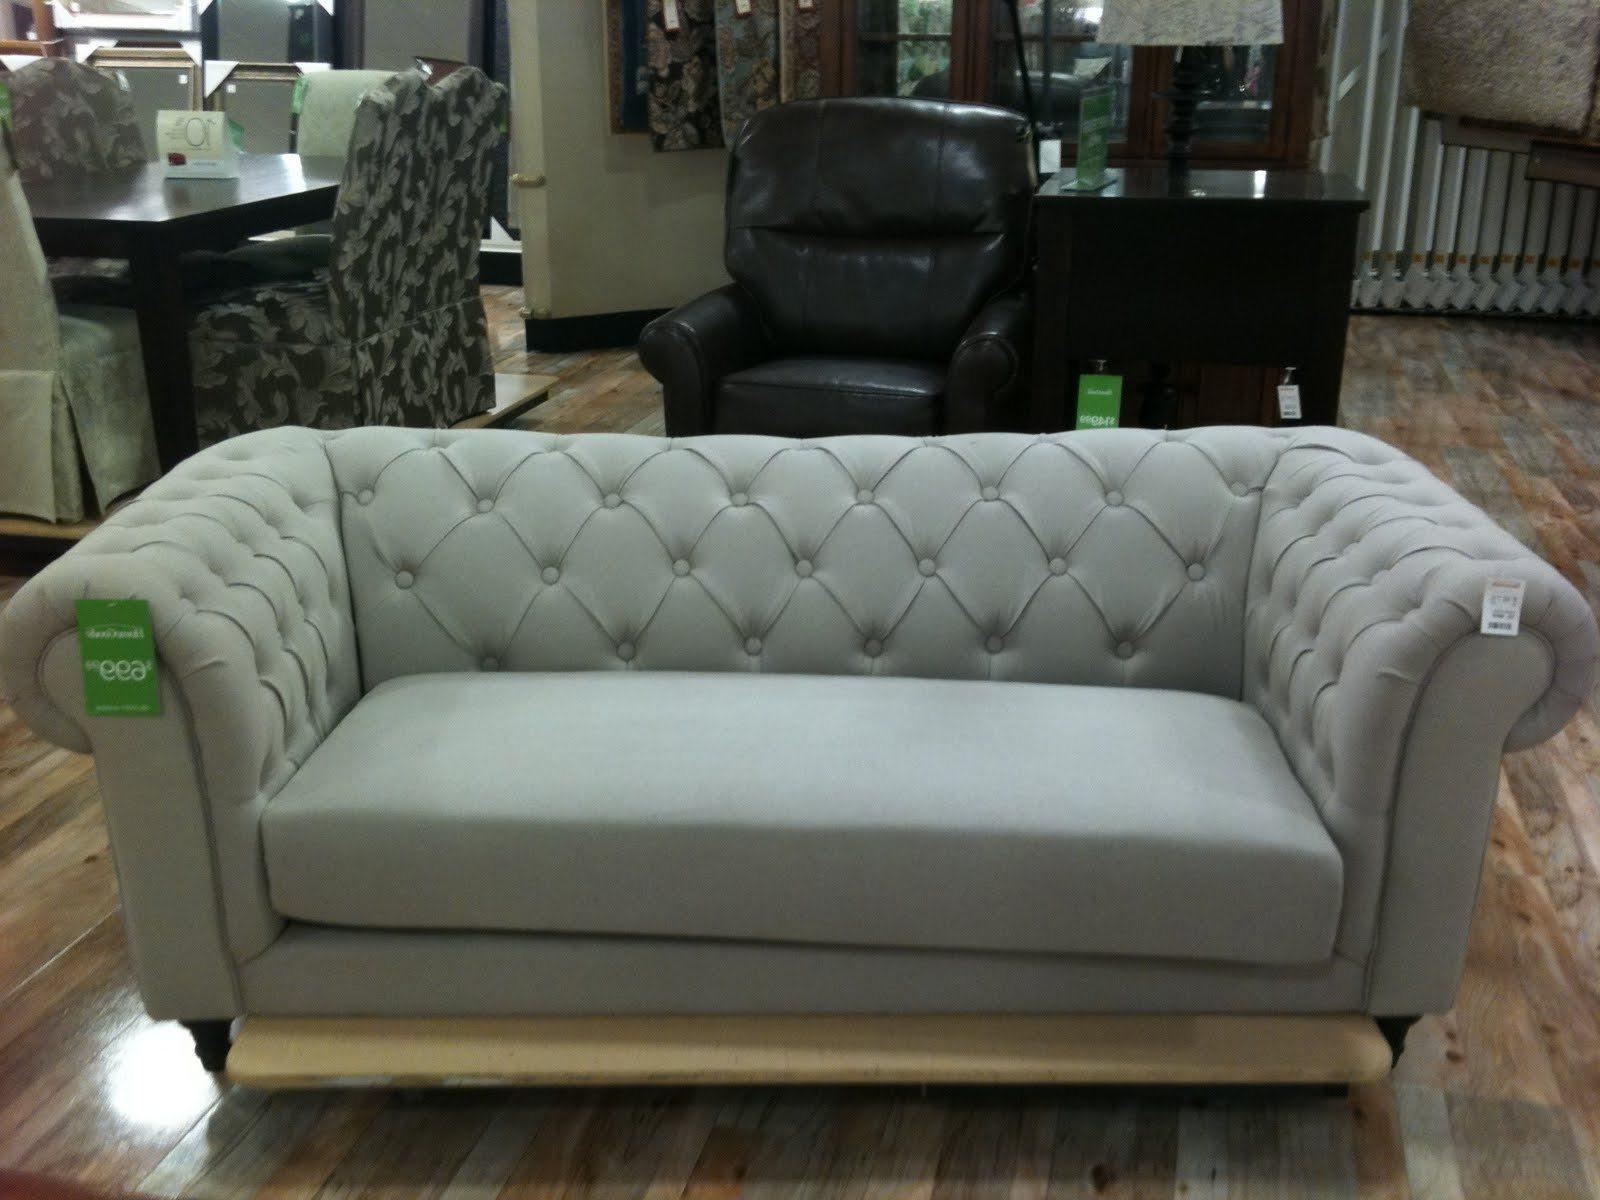 Tufted Sleeper Sofa. Quicklook (Image 18 of 20)